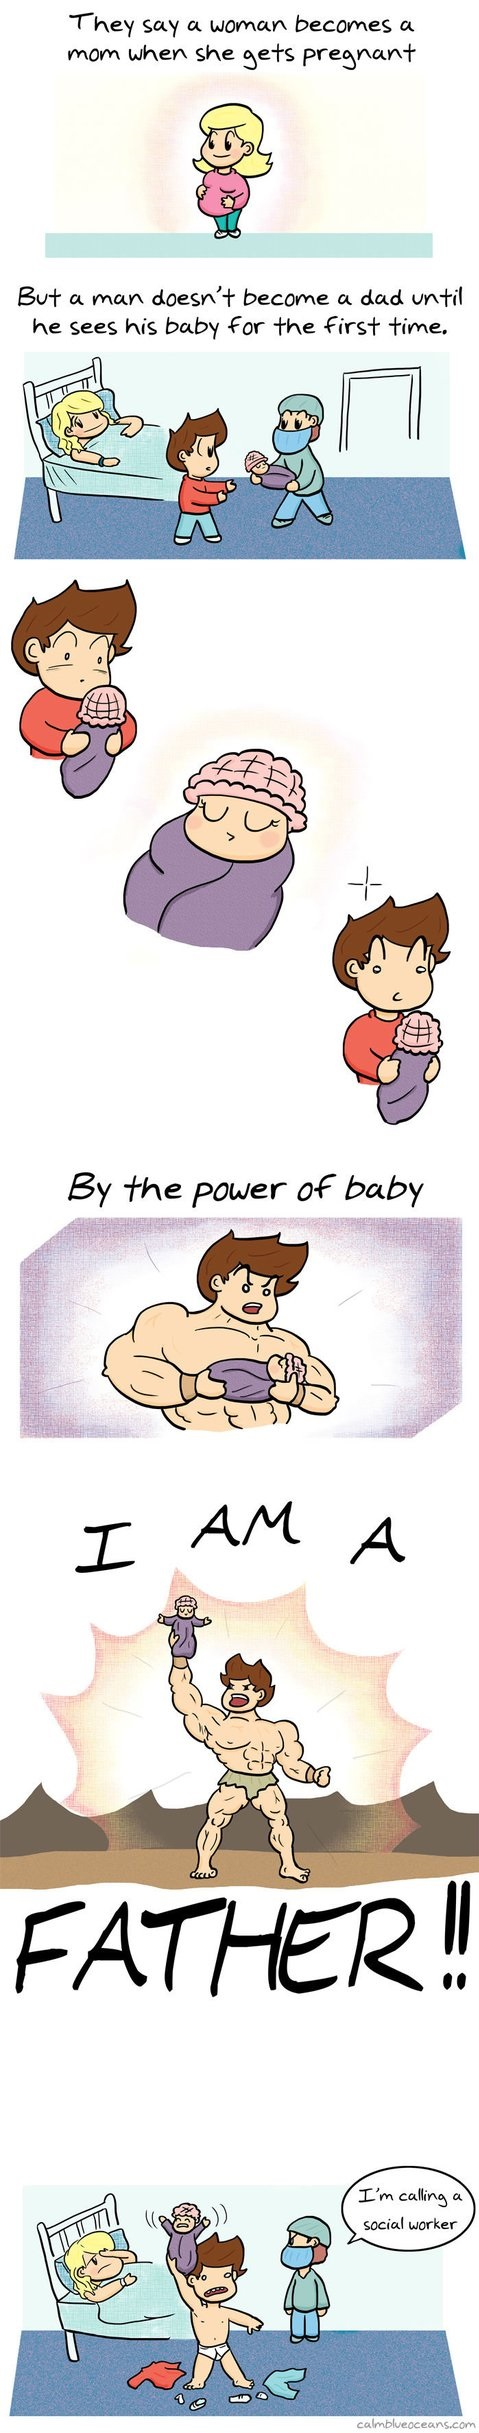 funny-picture-baby-father-mother-comics